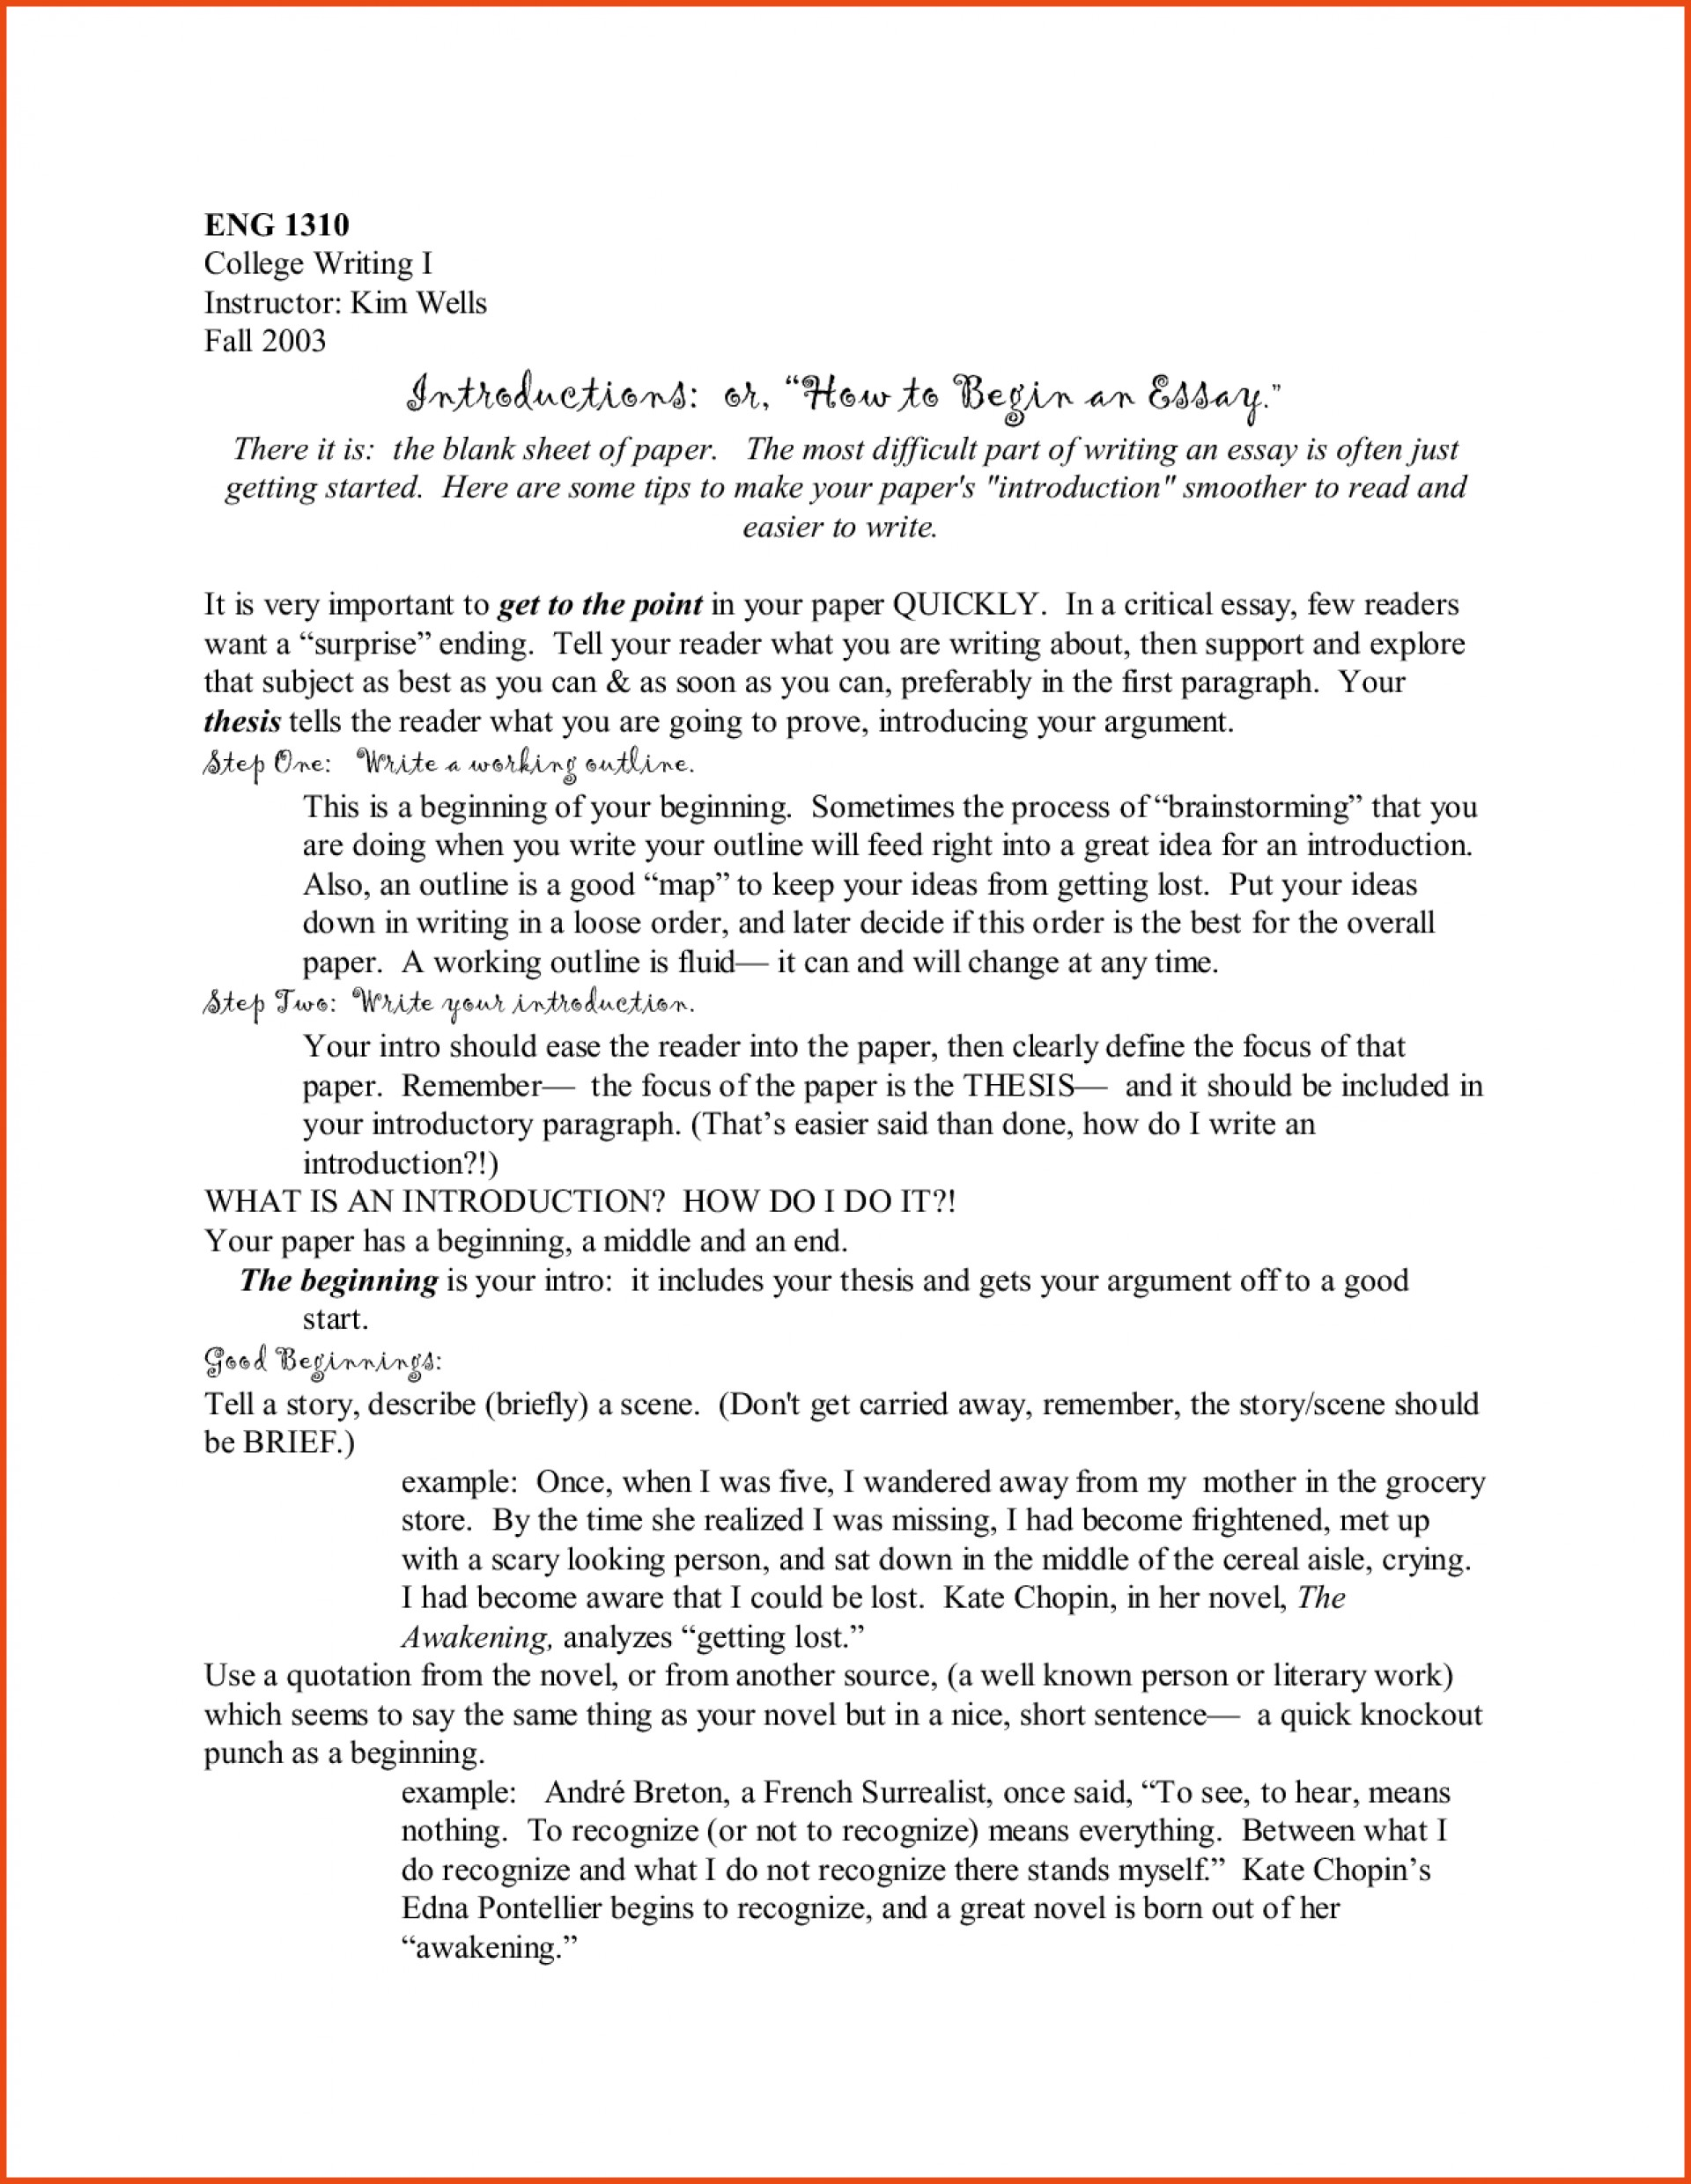 013 College Essays Applications Of Essay Consultant L How To Start An Amazing Analysis On A Book Ways With Question About Two Books 1920